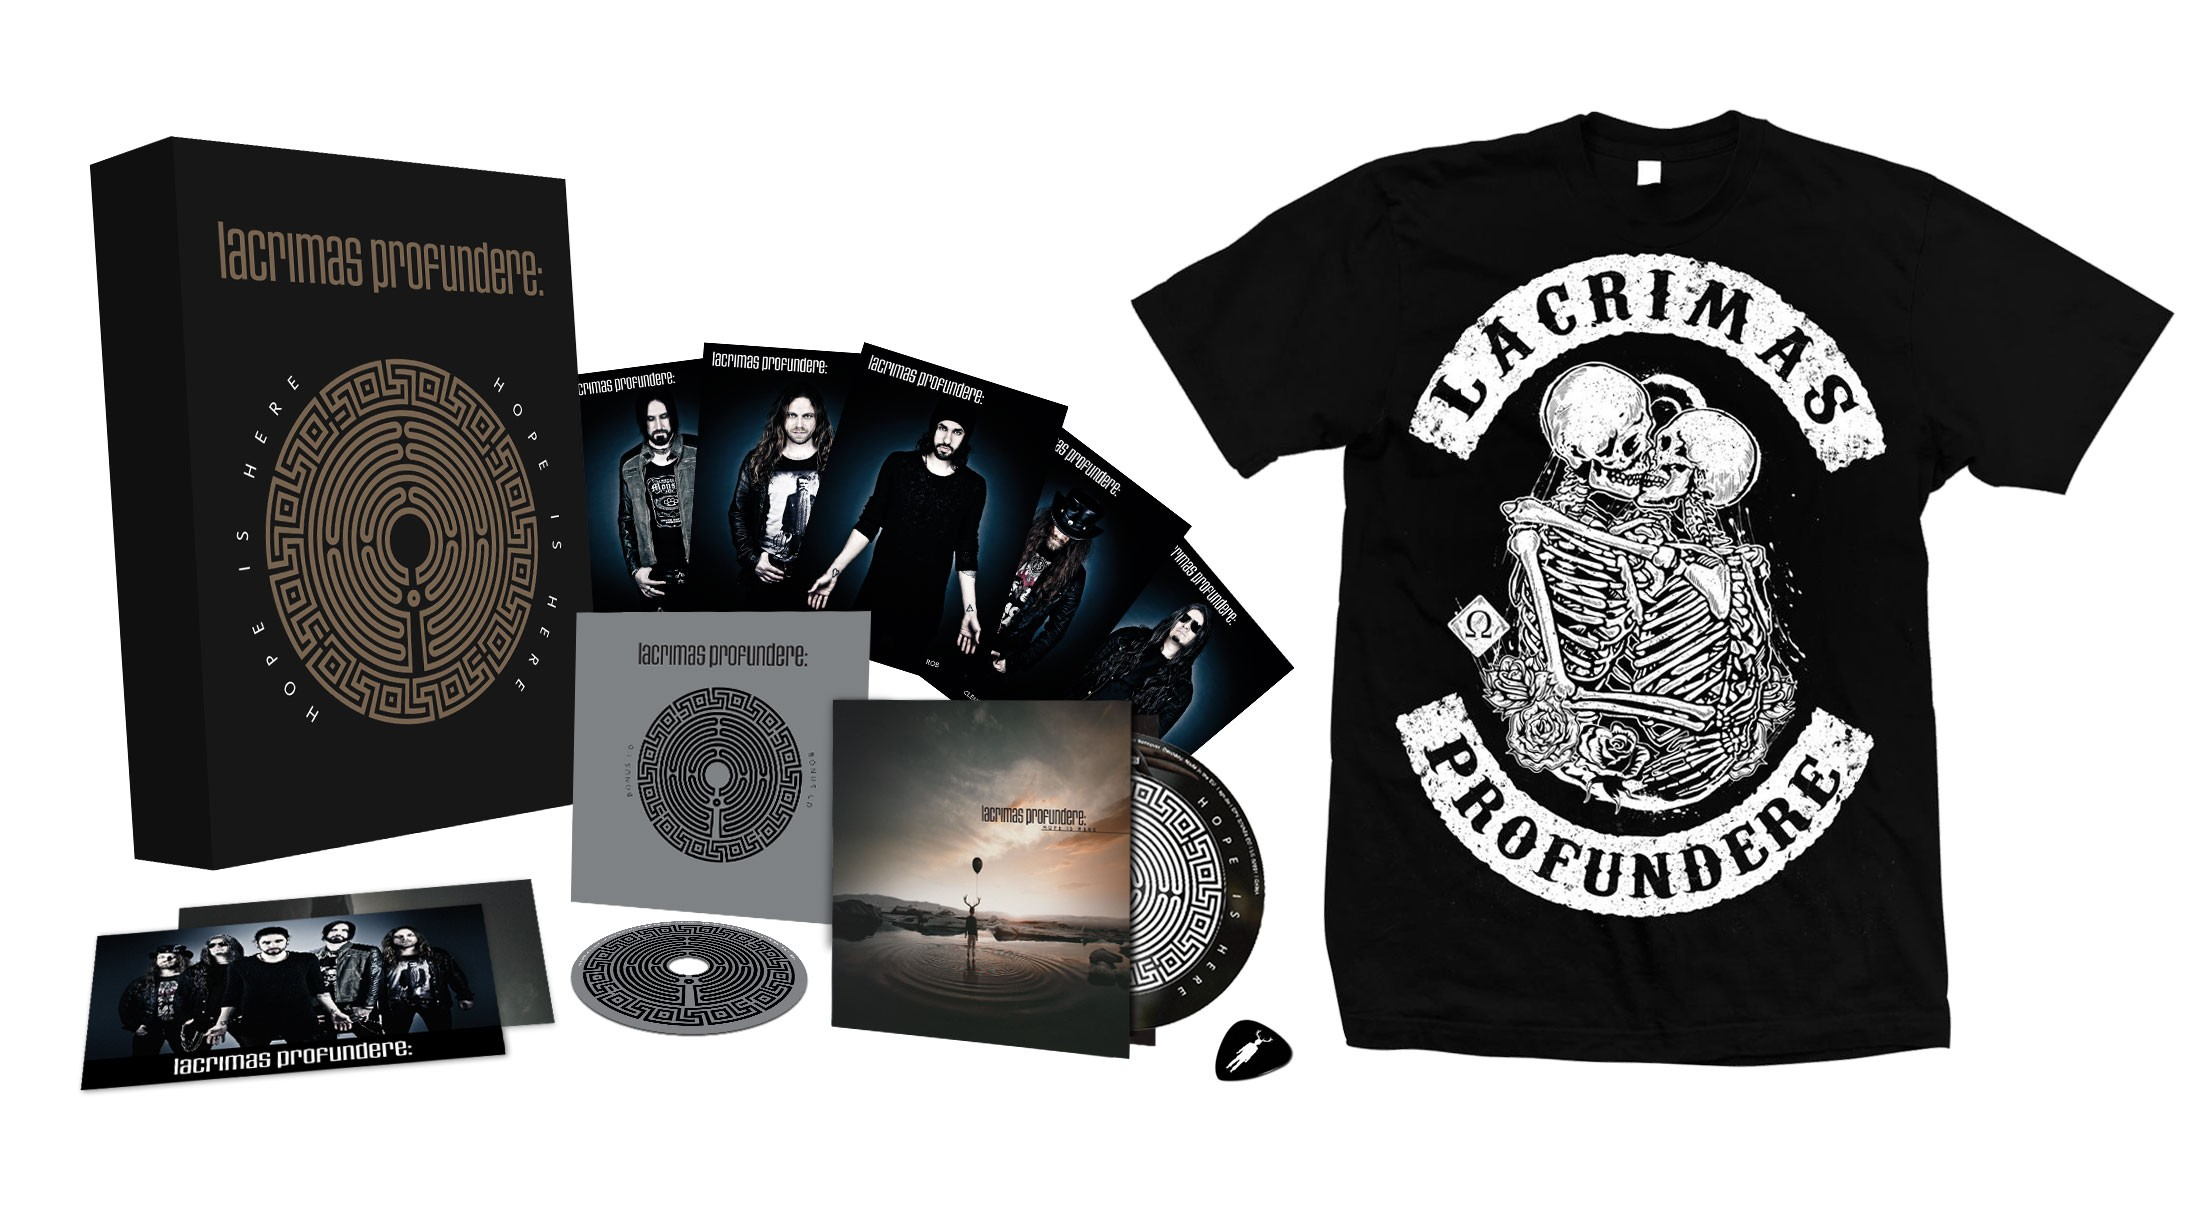 Lacrimas Profundere - Hope Is Here (Deluxe Edition) - BOX